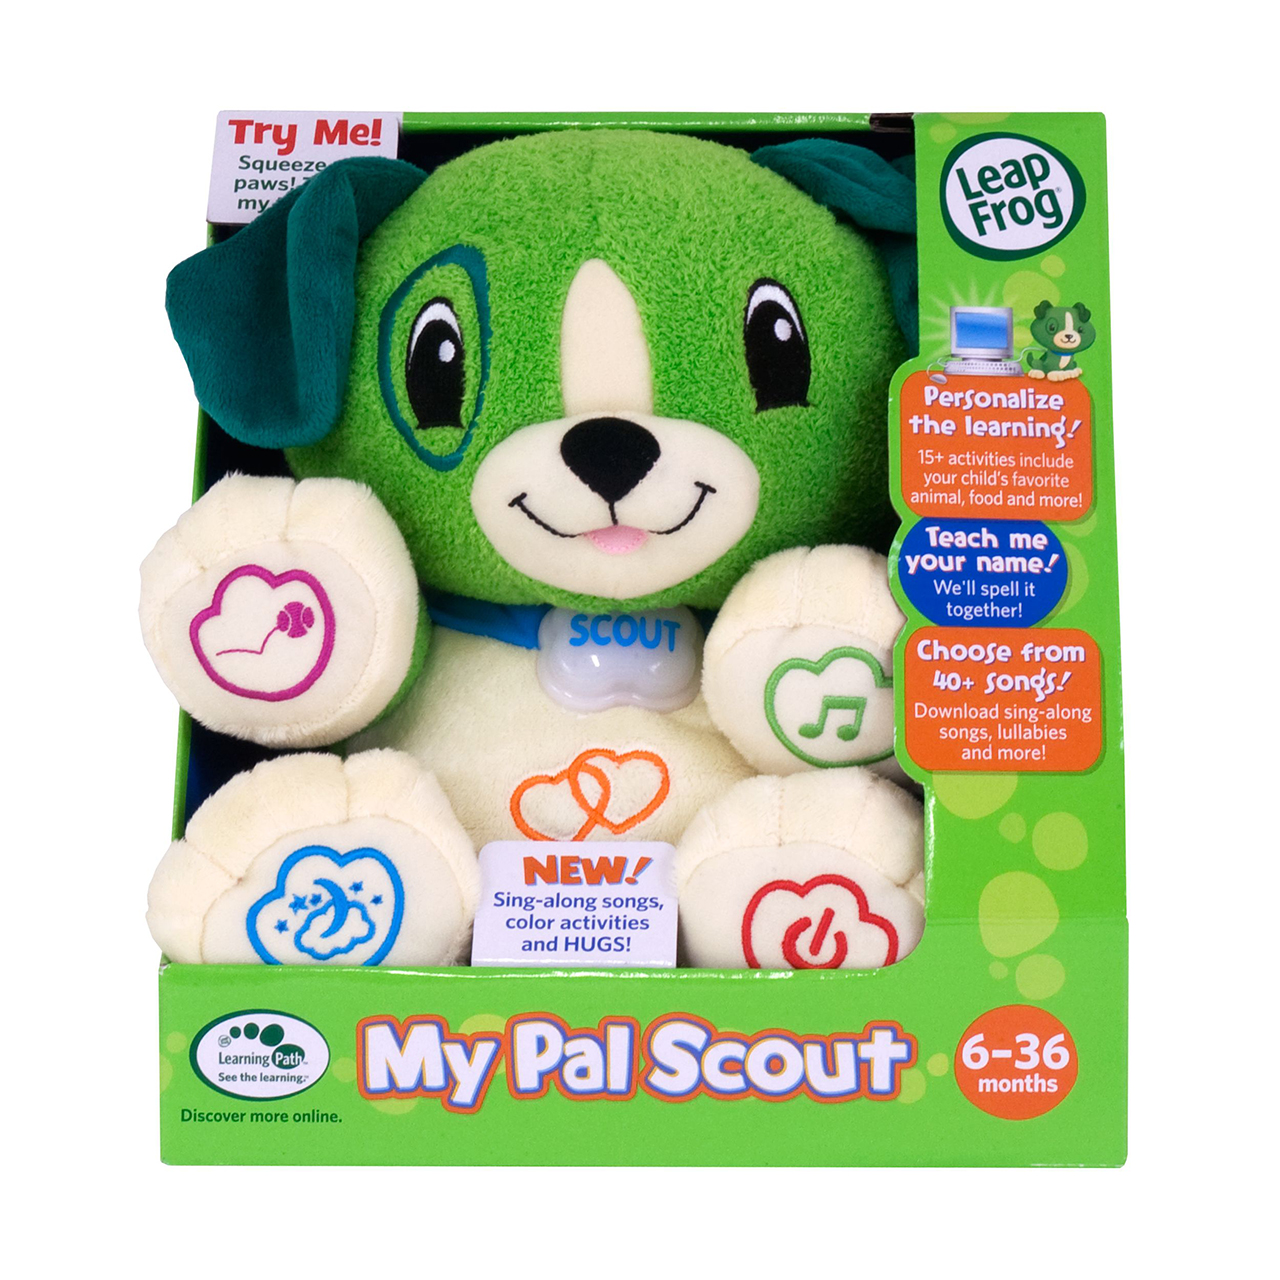 Leapfrog Scout My Puppy Pal Scout Leapfrog Prima Toys